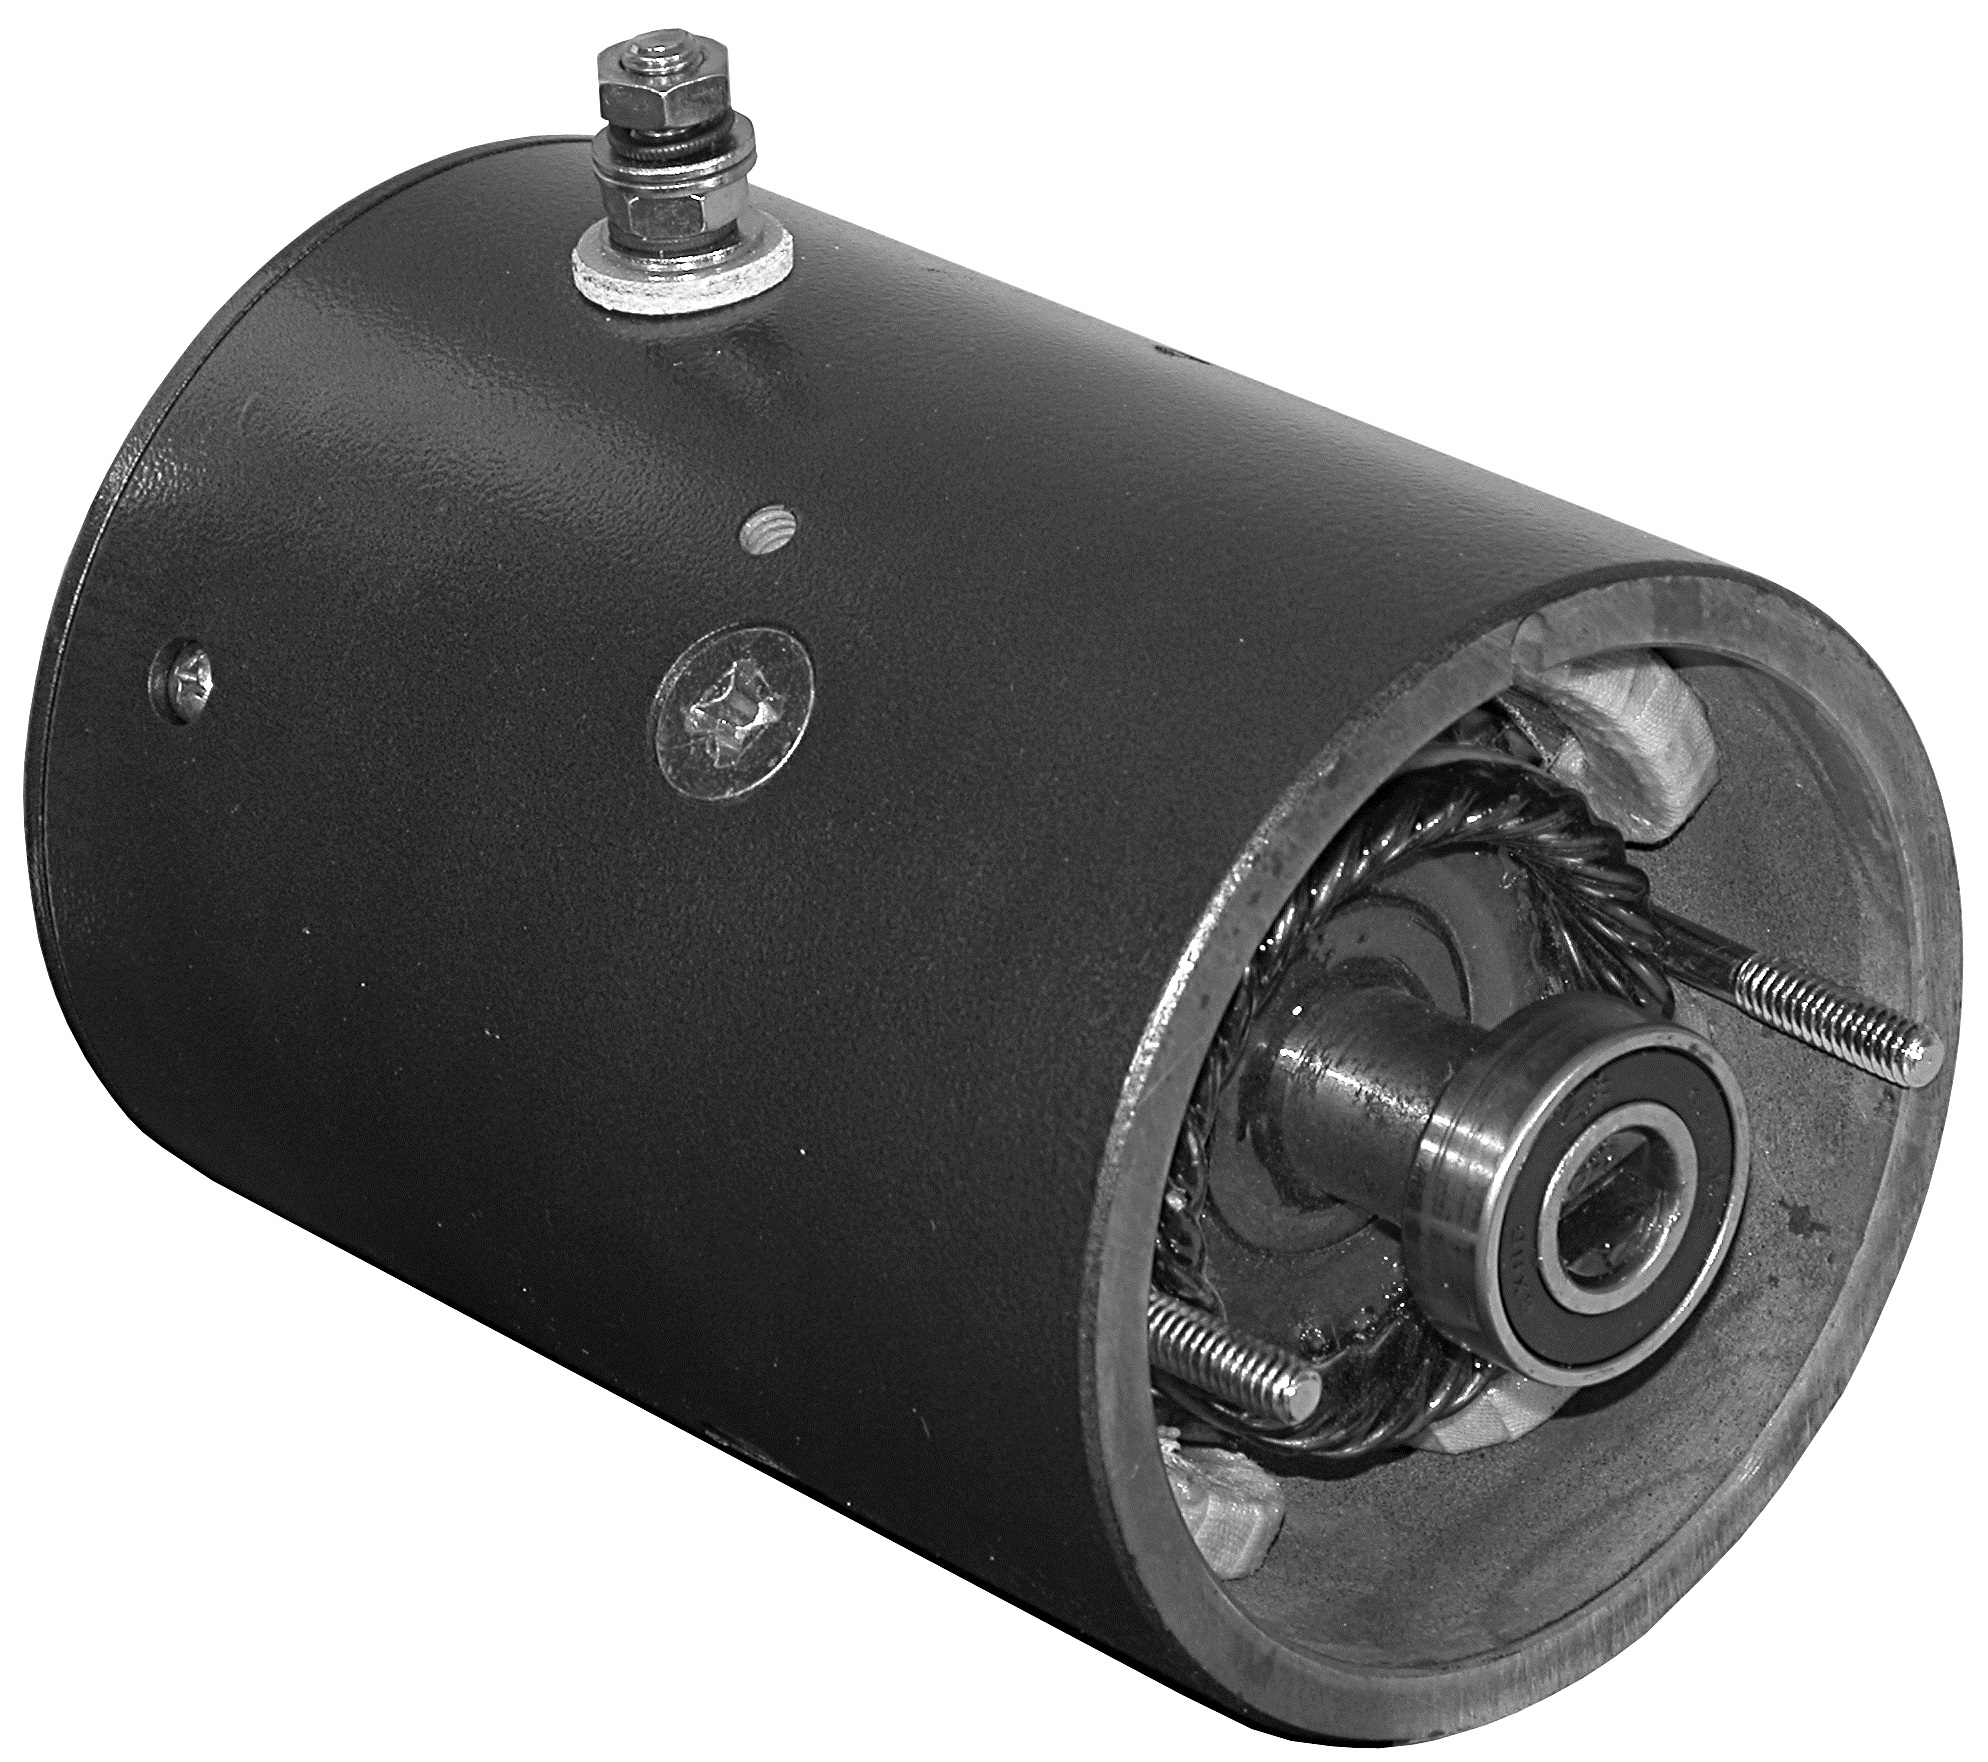 Buyers 1303600 12 Volt DC 4.5 Inch CCW Tang Shaft Sno-Way Snow Plow Replacement Motor